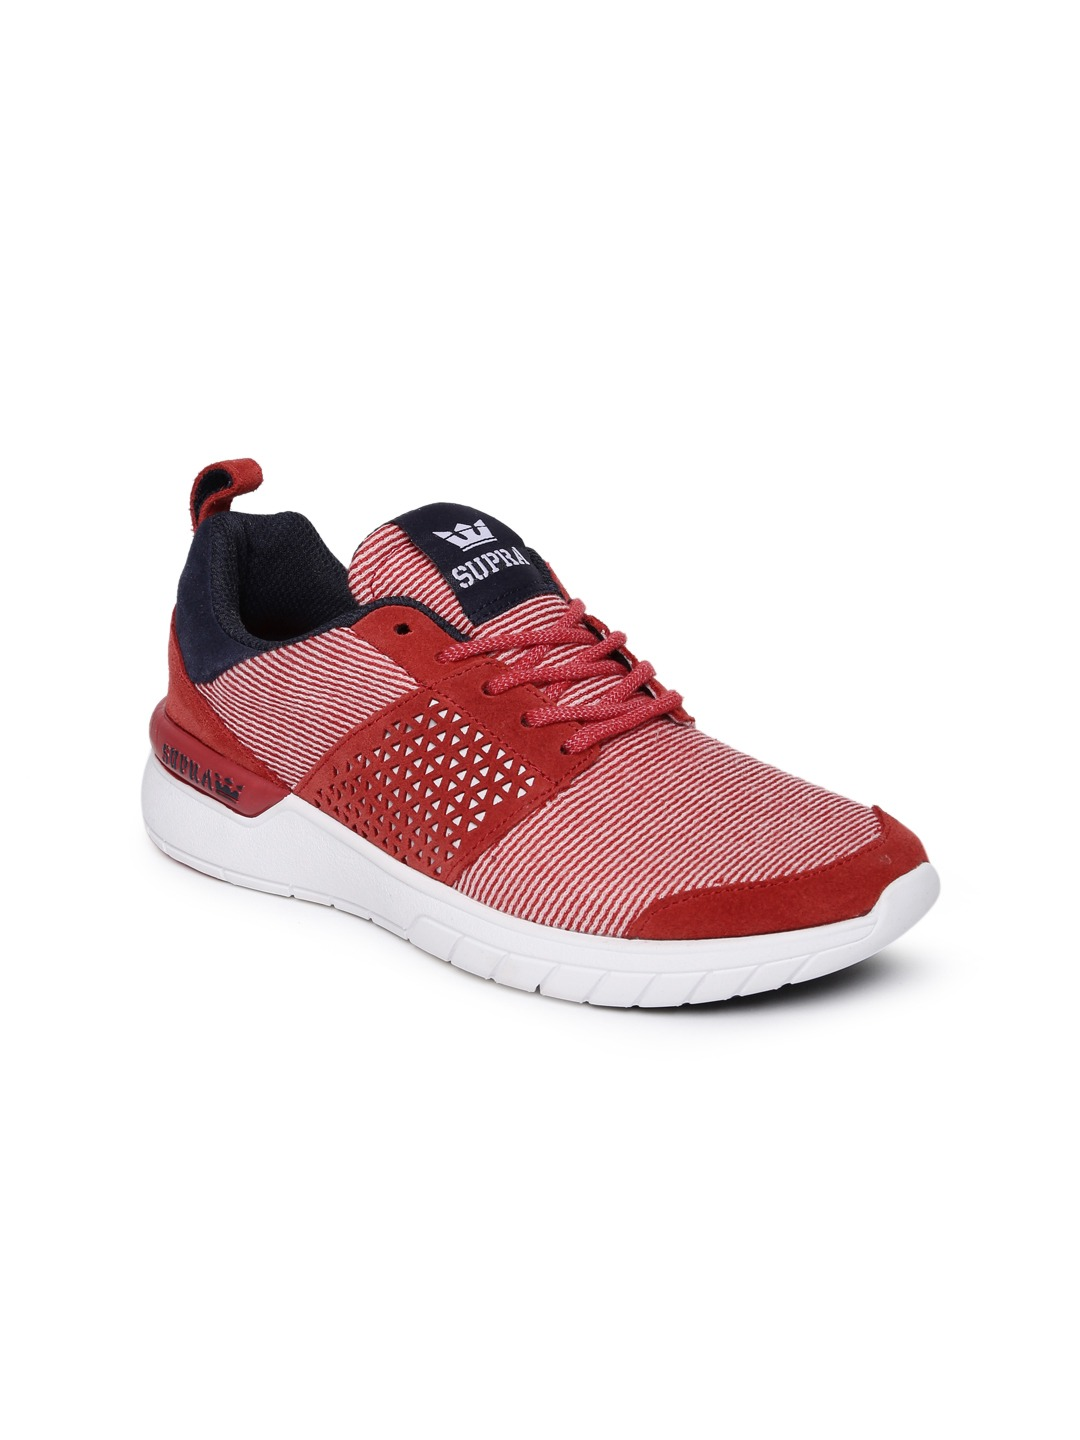 Coral Red & Navy Blue Scissor Skate Shoes